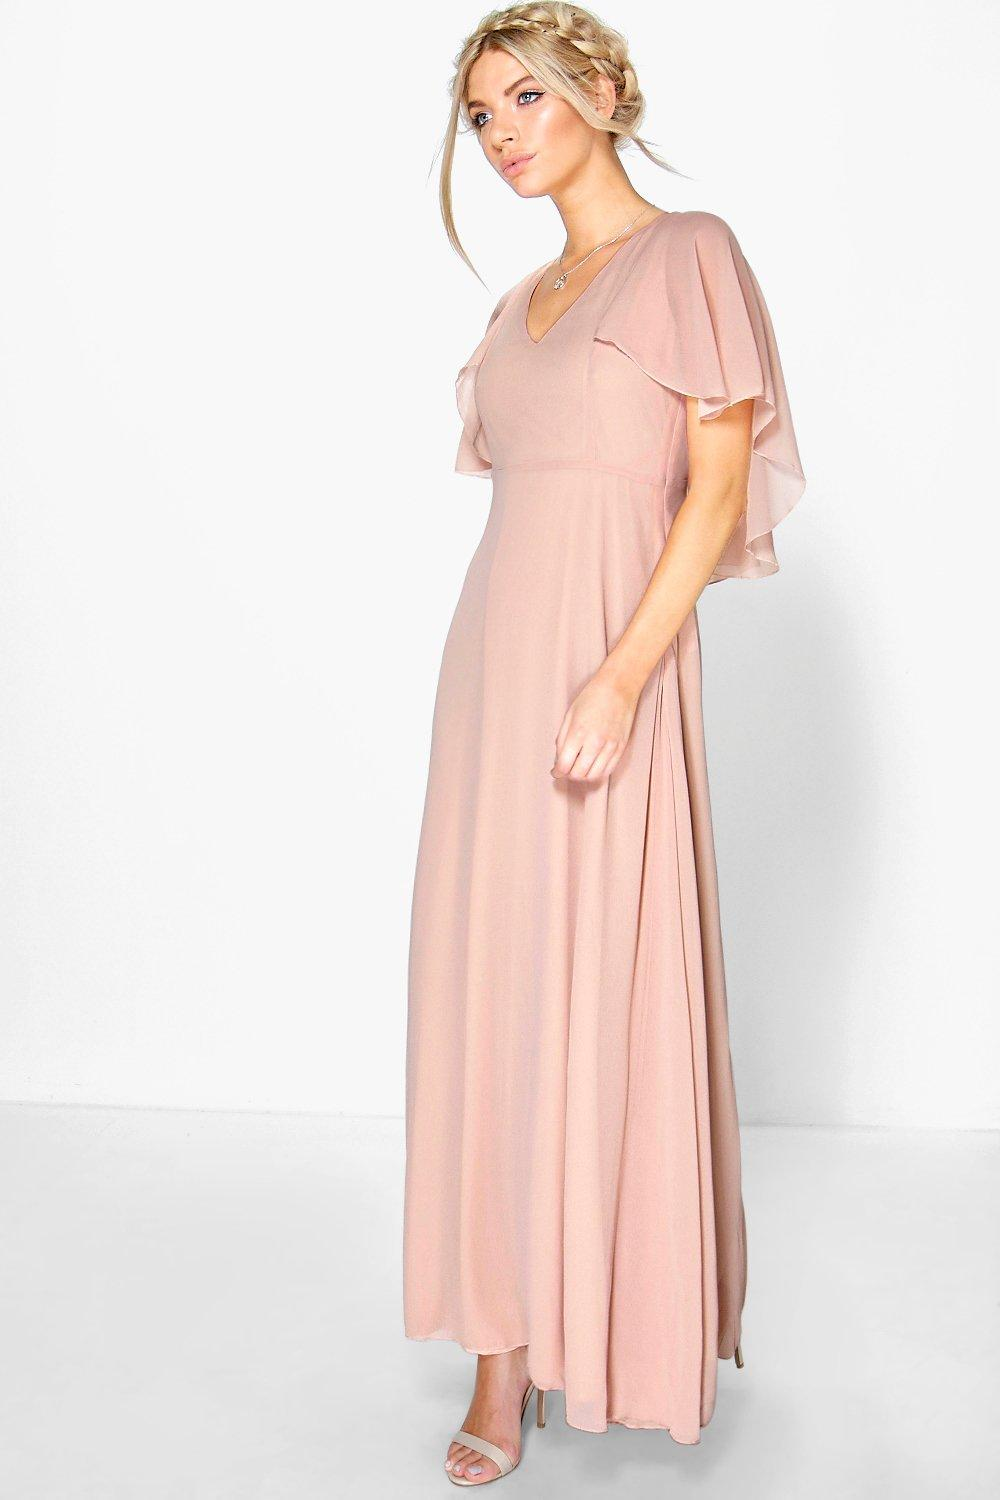 1930s Evening Dresses | Old Hollywood Silver Screen Dresses Womens Chiffon Cape Sleeve Maxi Bridesmaid Dress - Pink - 12 $20.00 AT vintagedancer.com